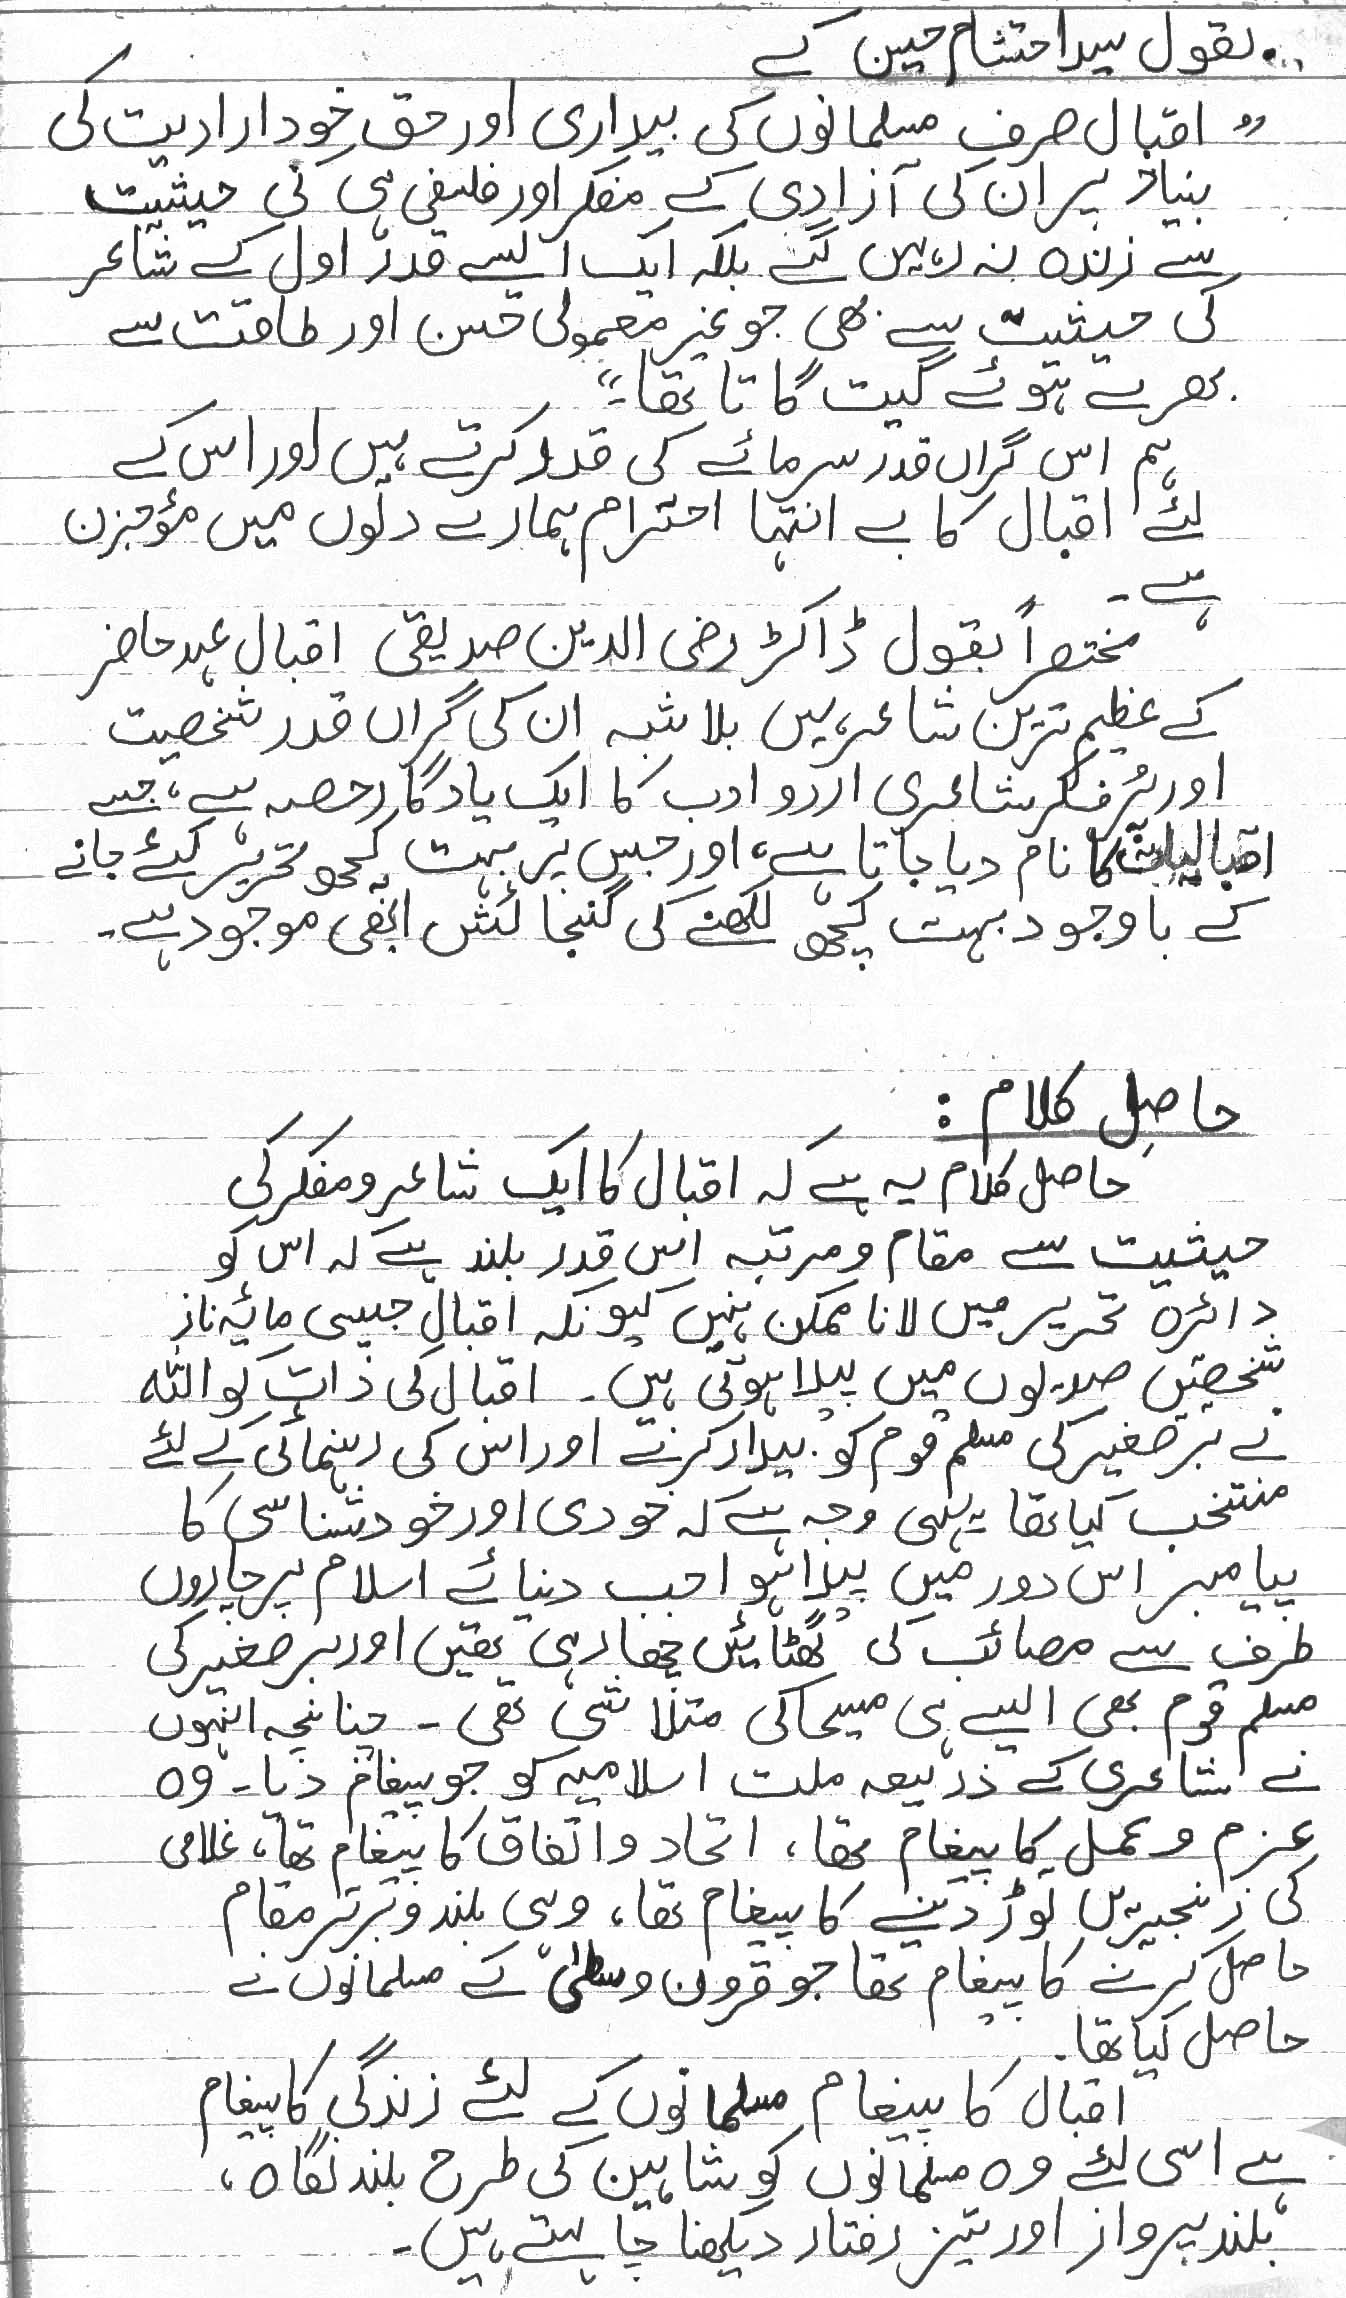 Essays With Thesis Statements Information About Iqbal In Urdu Example Of English Essay also Science And Technology Essays Information About Iqbal In Urdu High School Application Essay Sample